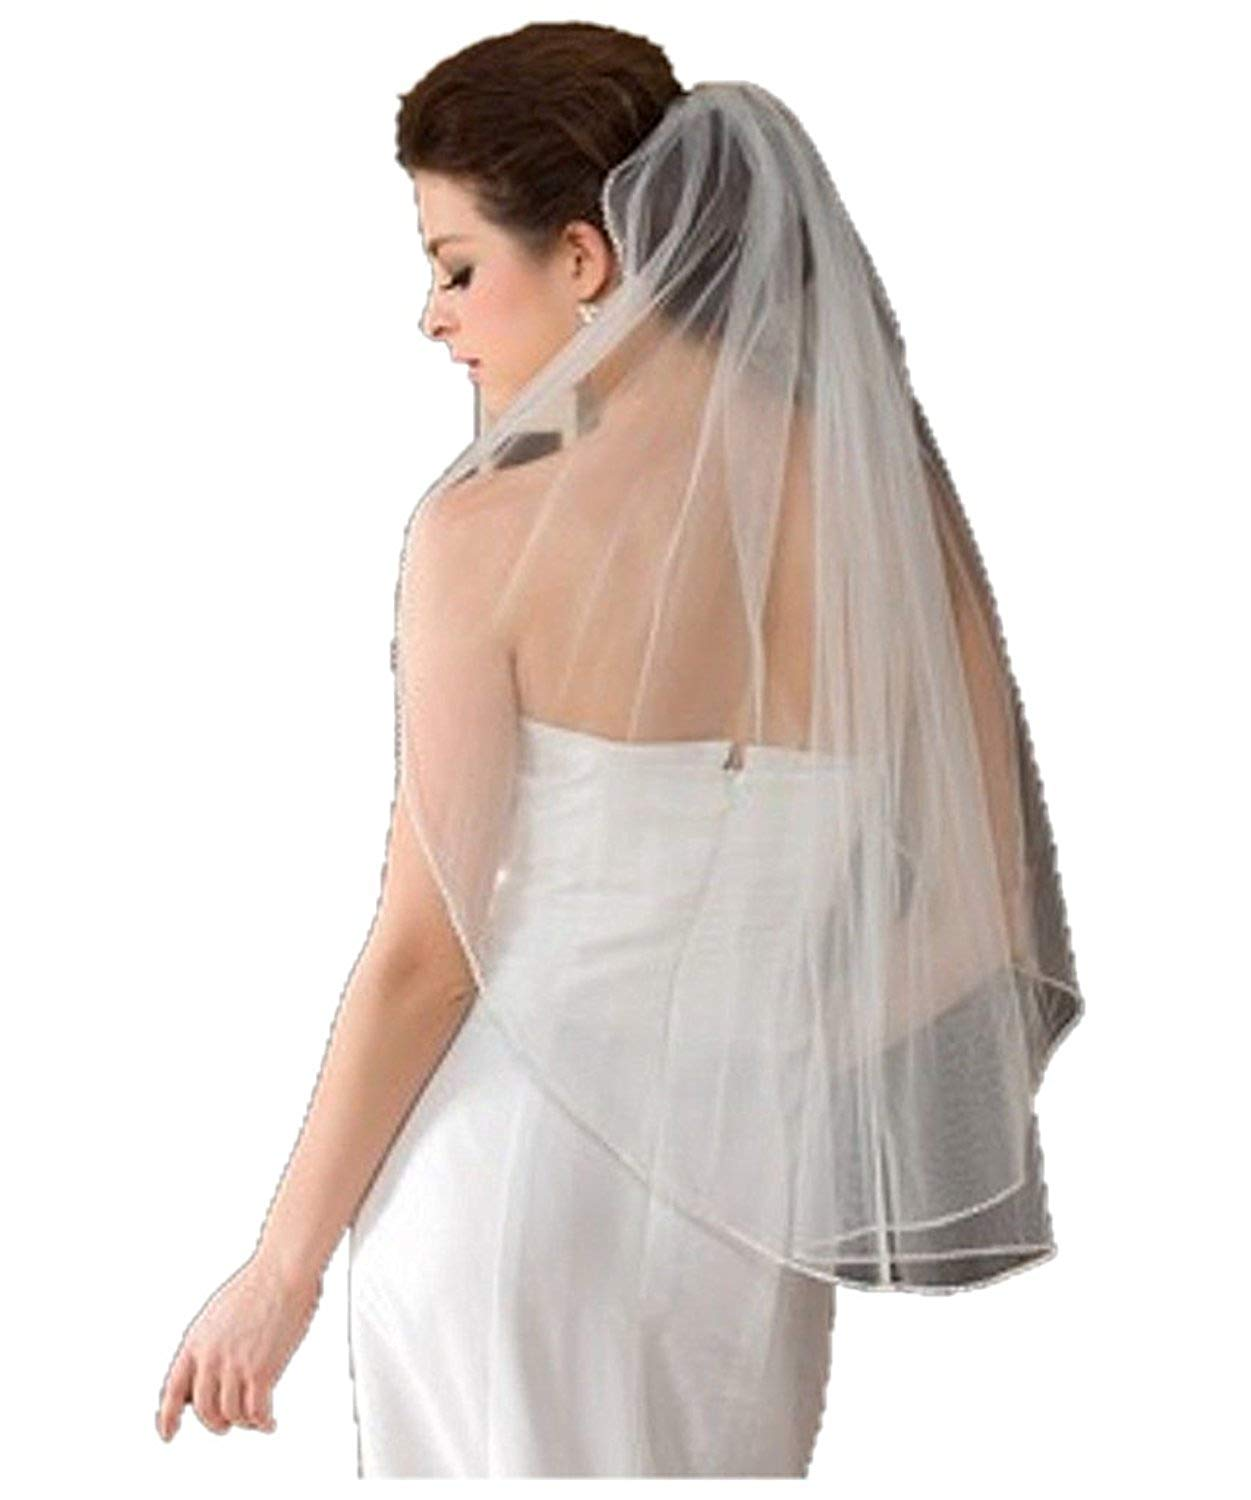 FJMM Women's Tulle Crystals Edge Ivory White Wedding Bridal Veil Short with Comb